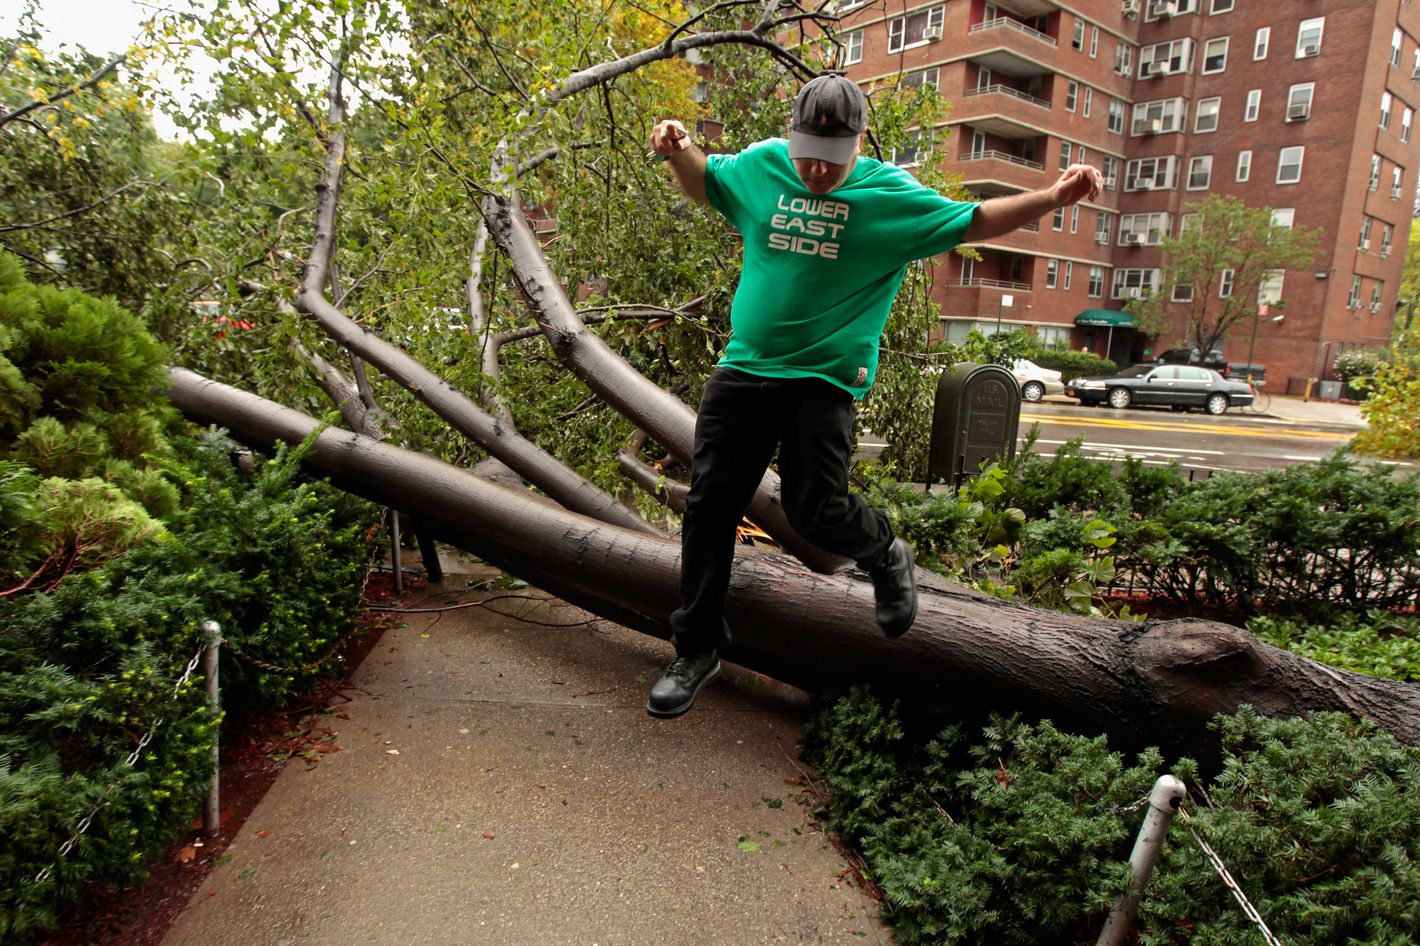 NEW YORK, NY - AUGUST 28:  Isaac Krinsky steps over one of five trees knocked over by high winds from Hurricane Irene in front of the East River Cooperative Village apartment buildings along Grand Avenue August 28, 2011 in New York City. The hurricane hit New York as a Category 1 storm before being downgraded to a tropical storm.  (Photo by Chip Somodevilla/Getty Images)